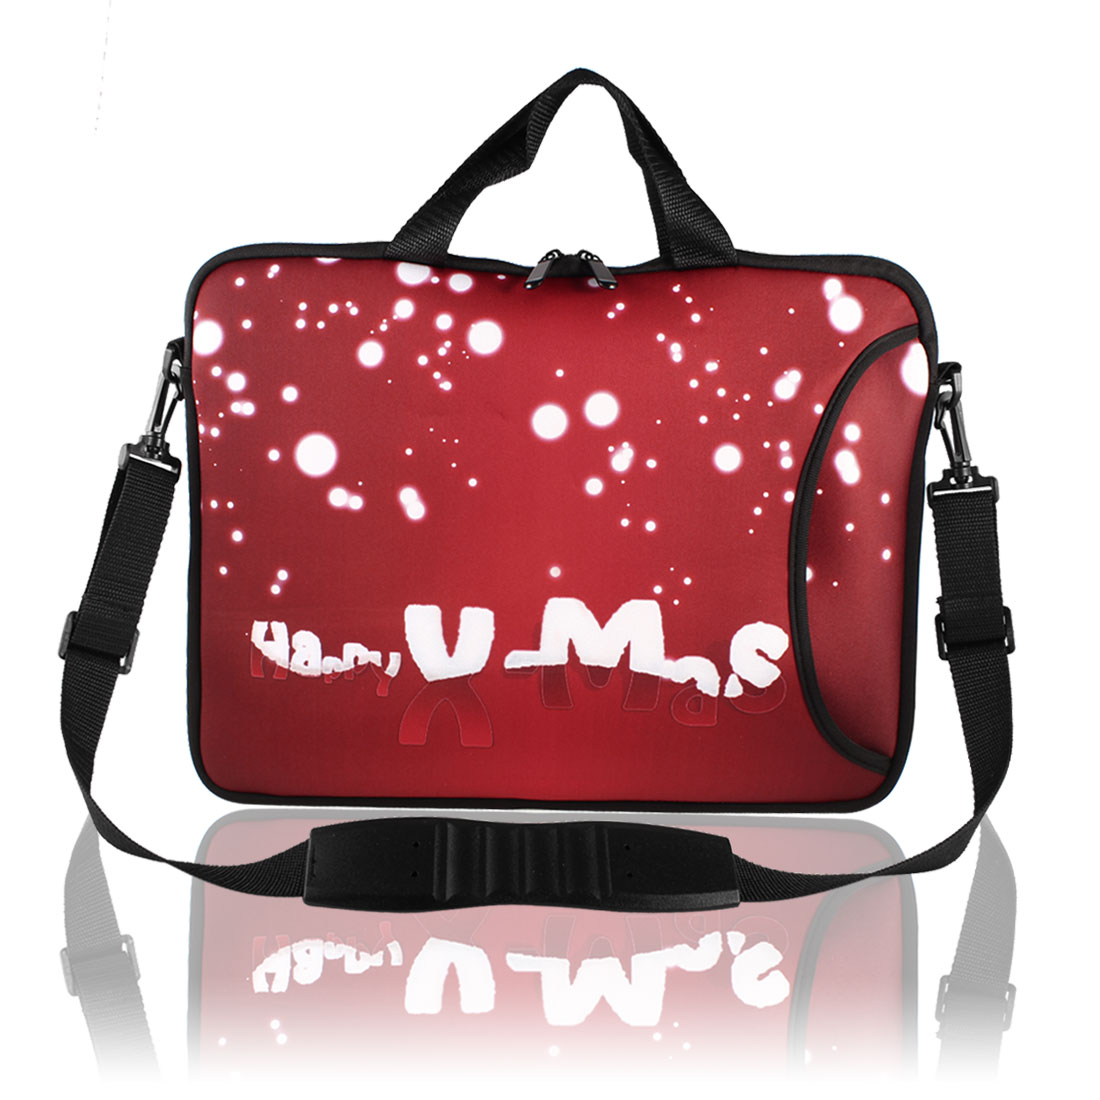 "Christmas White Dots Shoulder Bag Pouch Sleeve Case Cover Red for 17"" Laptop"